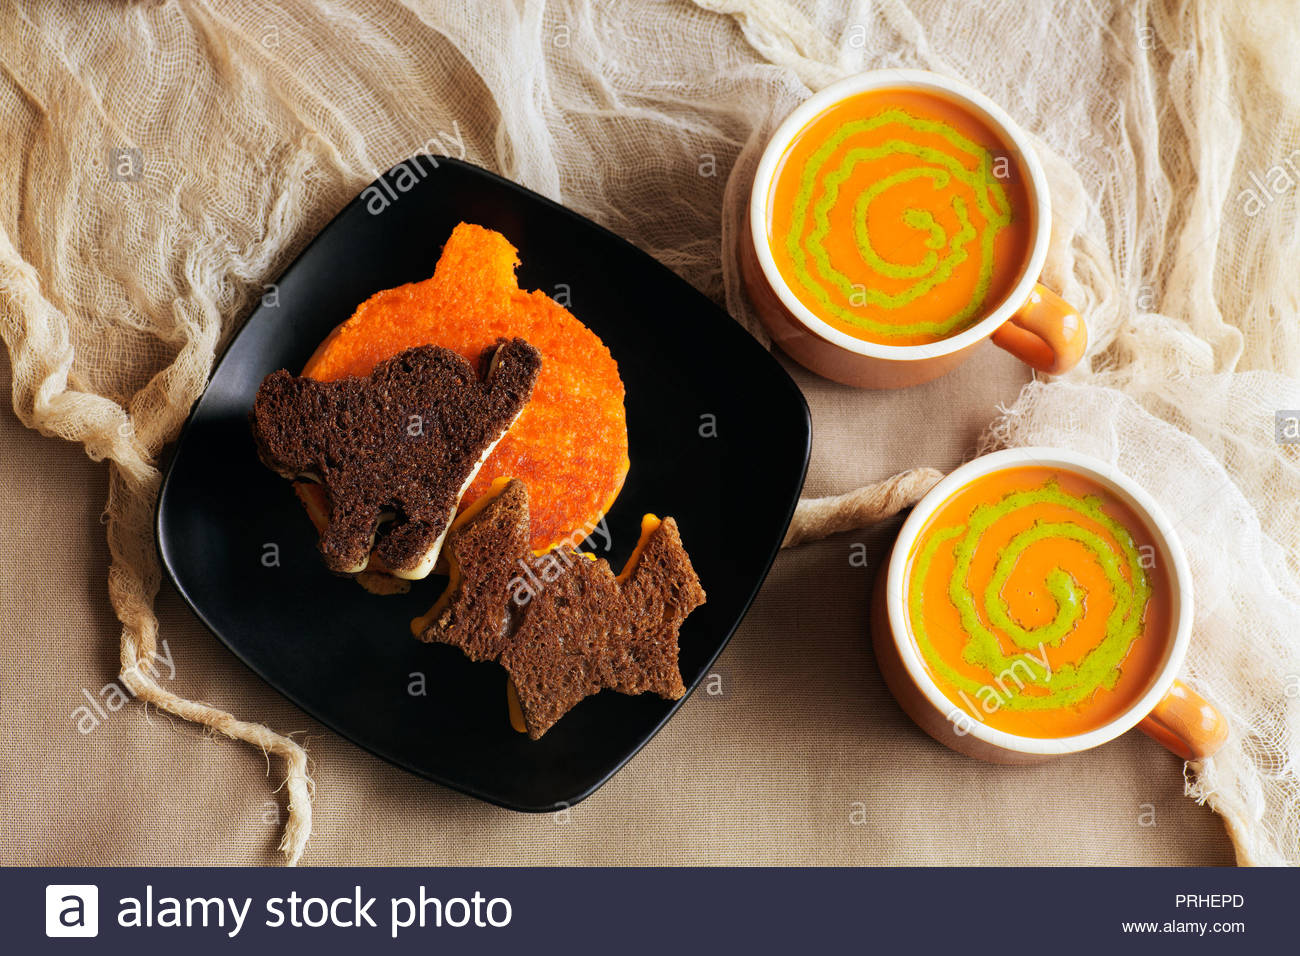 Rye, pumpernickel and ornage colored cut-out Halloween grilled cheese sandwiches. Tomato soup with pesto swirls in vintage orange cups. Shredded stain - Stock Image